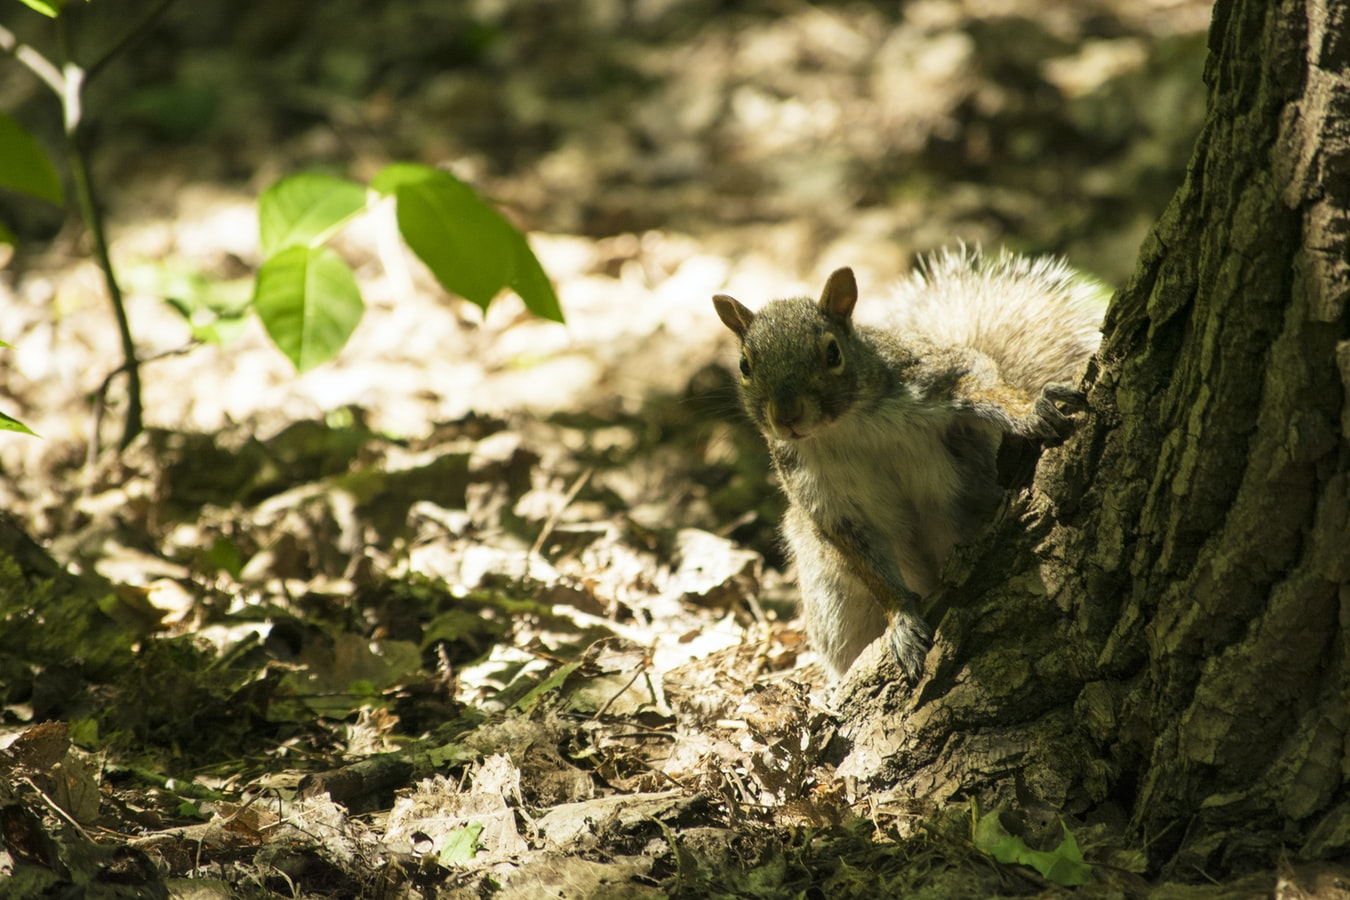 A squirrel on the woodland floor